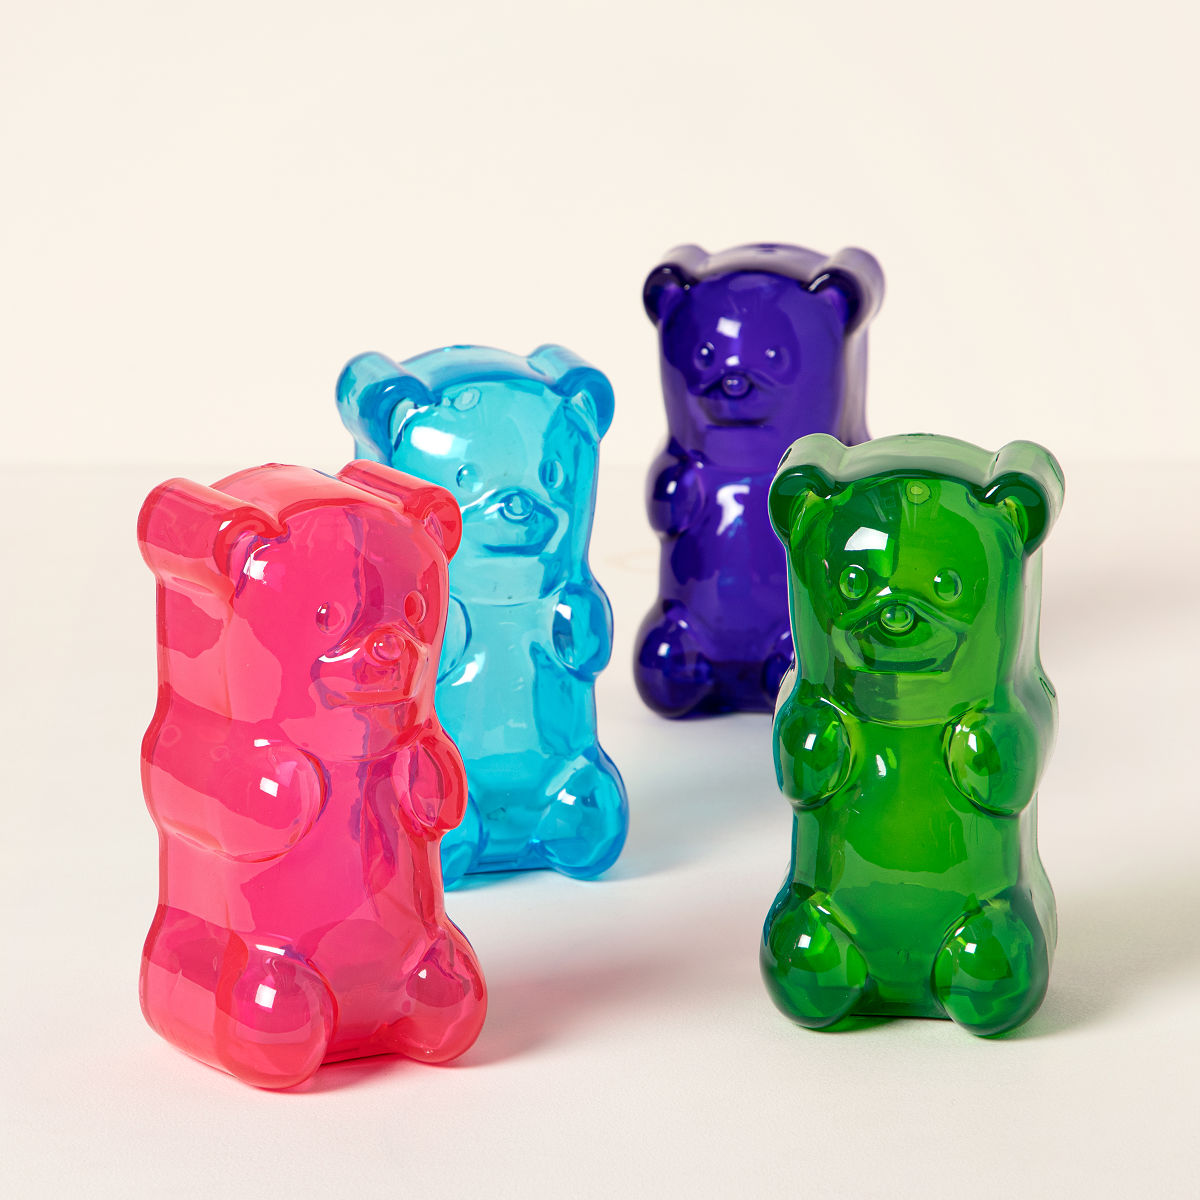 gummy bear lights gummi bear lamp nightlight uncommongoods. Black Bedroom Furniture Sets. Home Design Ideas